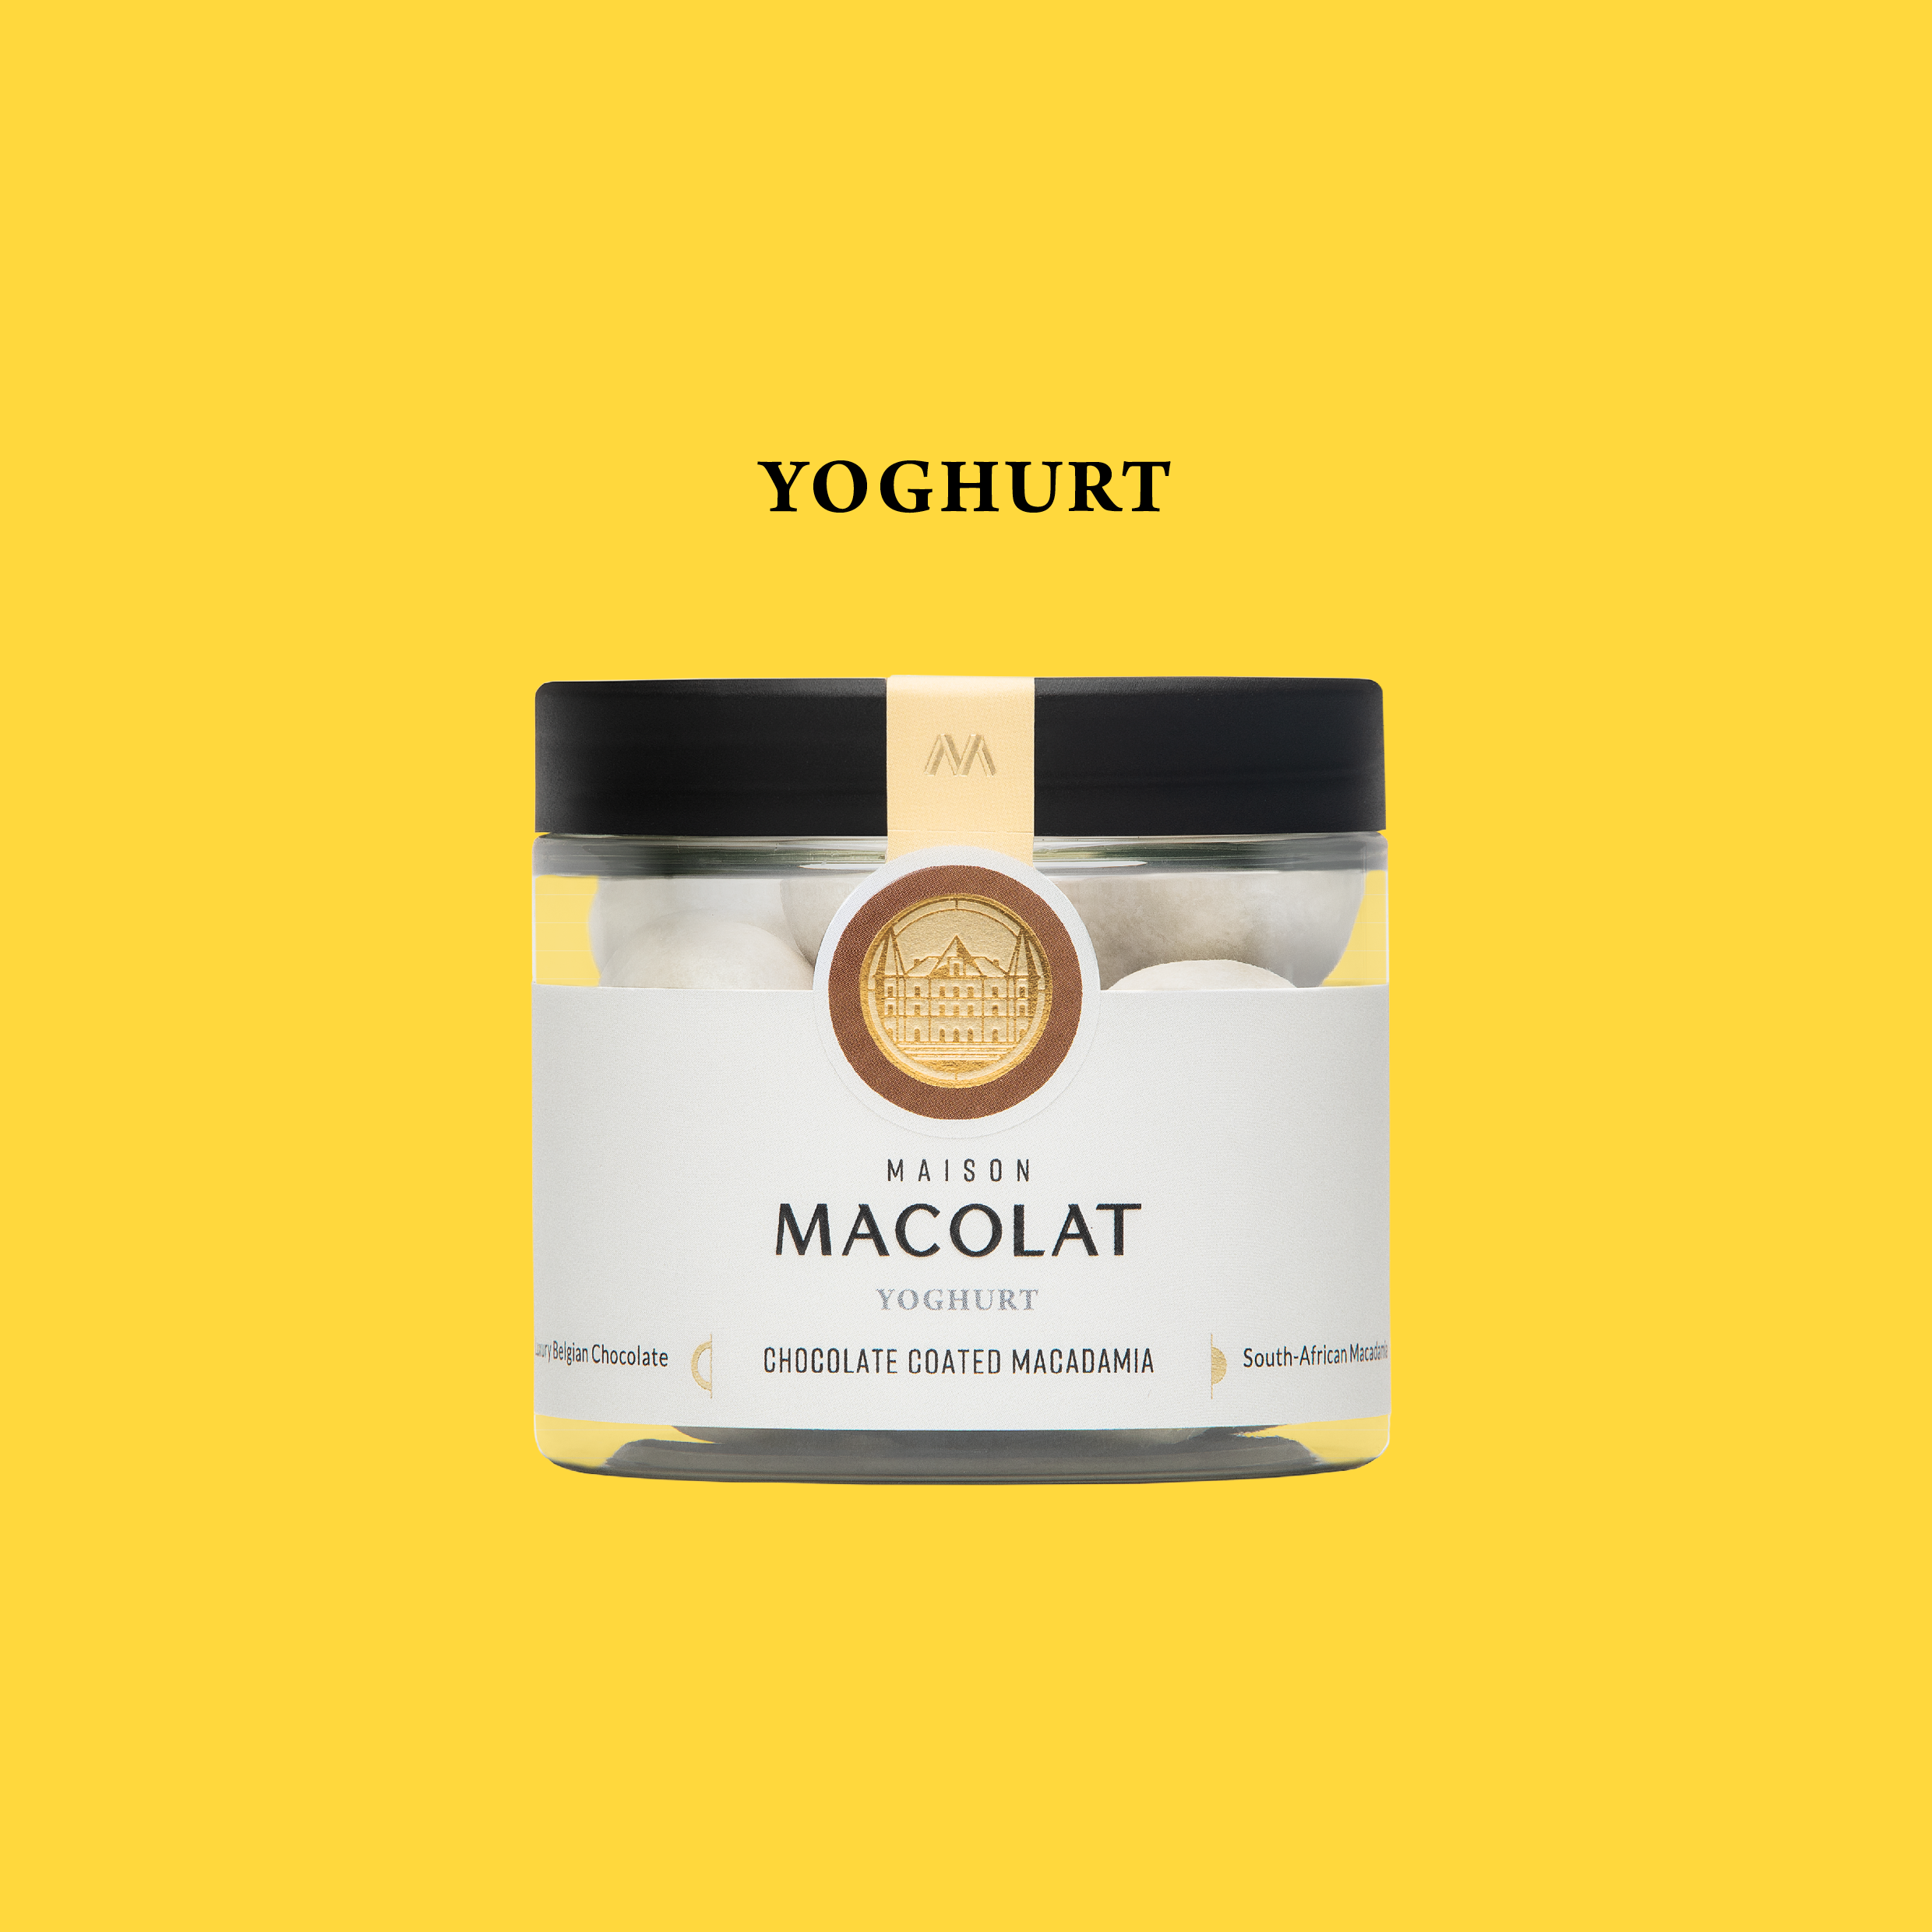 Overview_Yoghurt.png